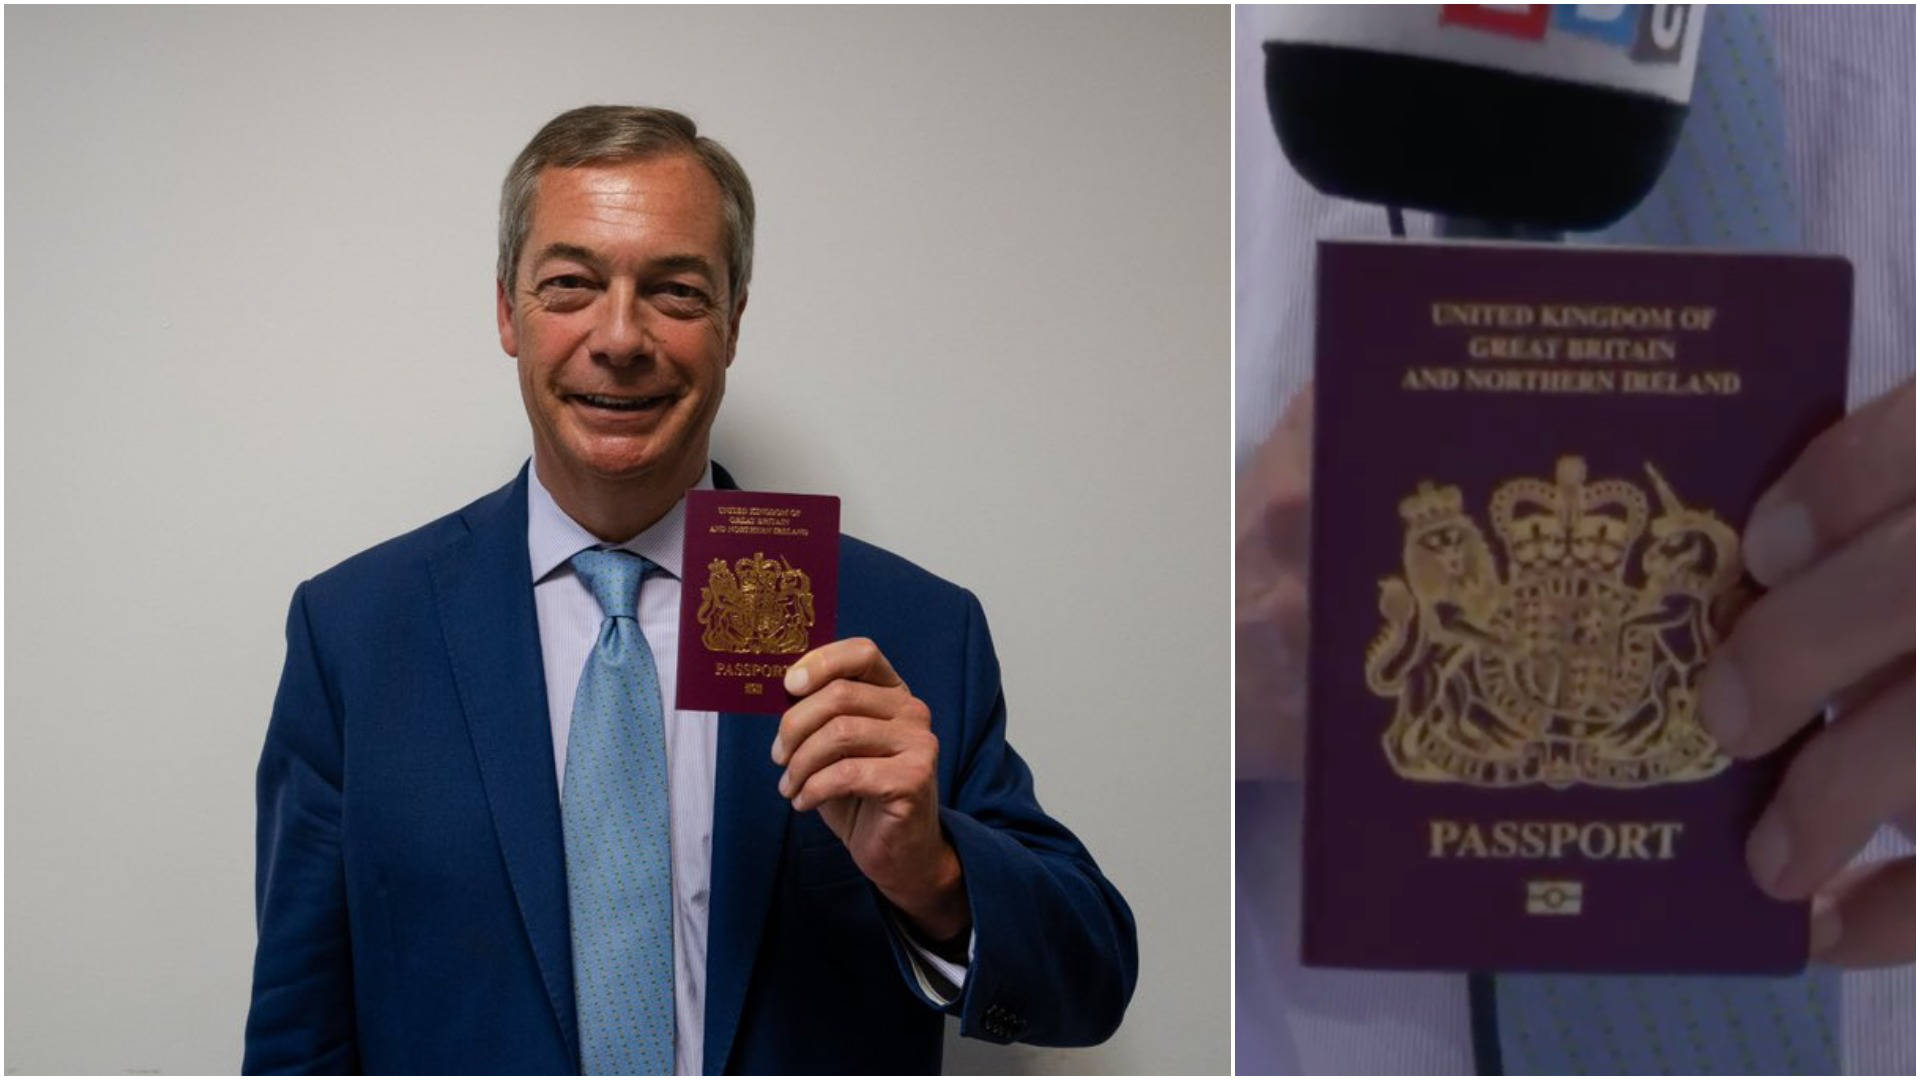 Nigel Farage Has A New Passport And He Could Not Be Happier